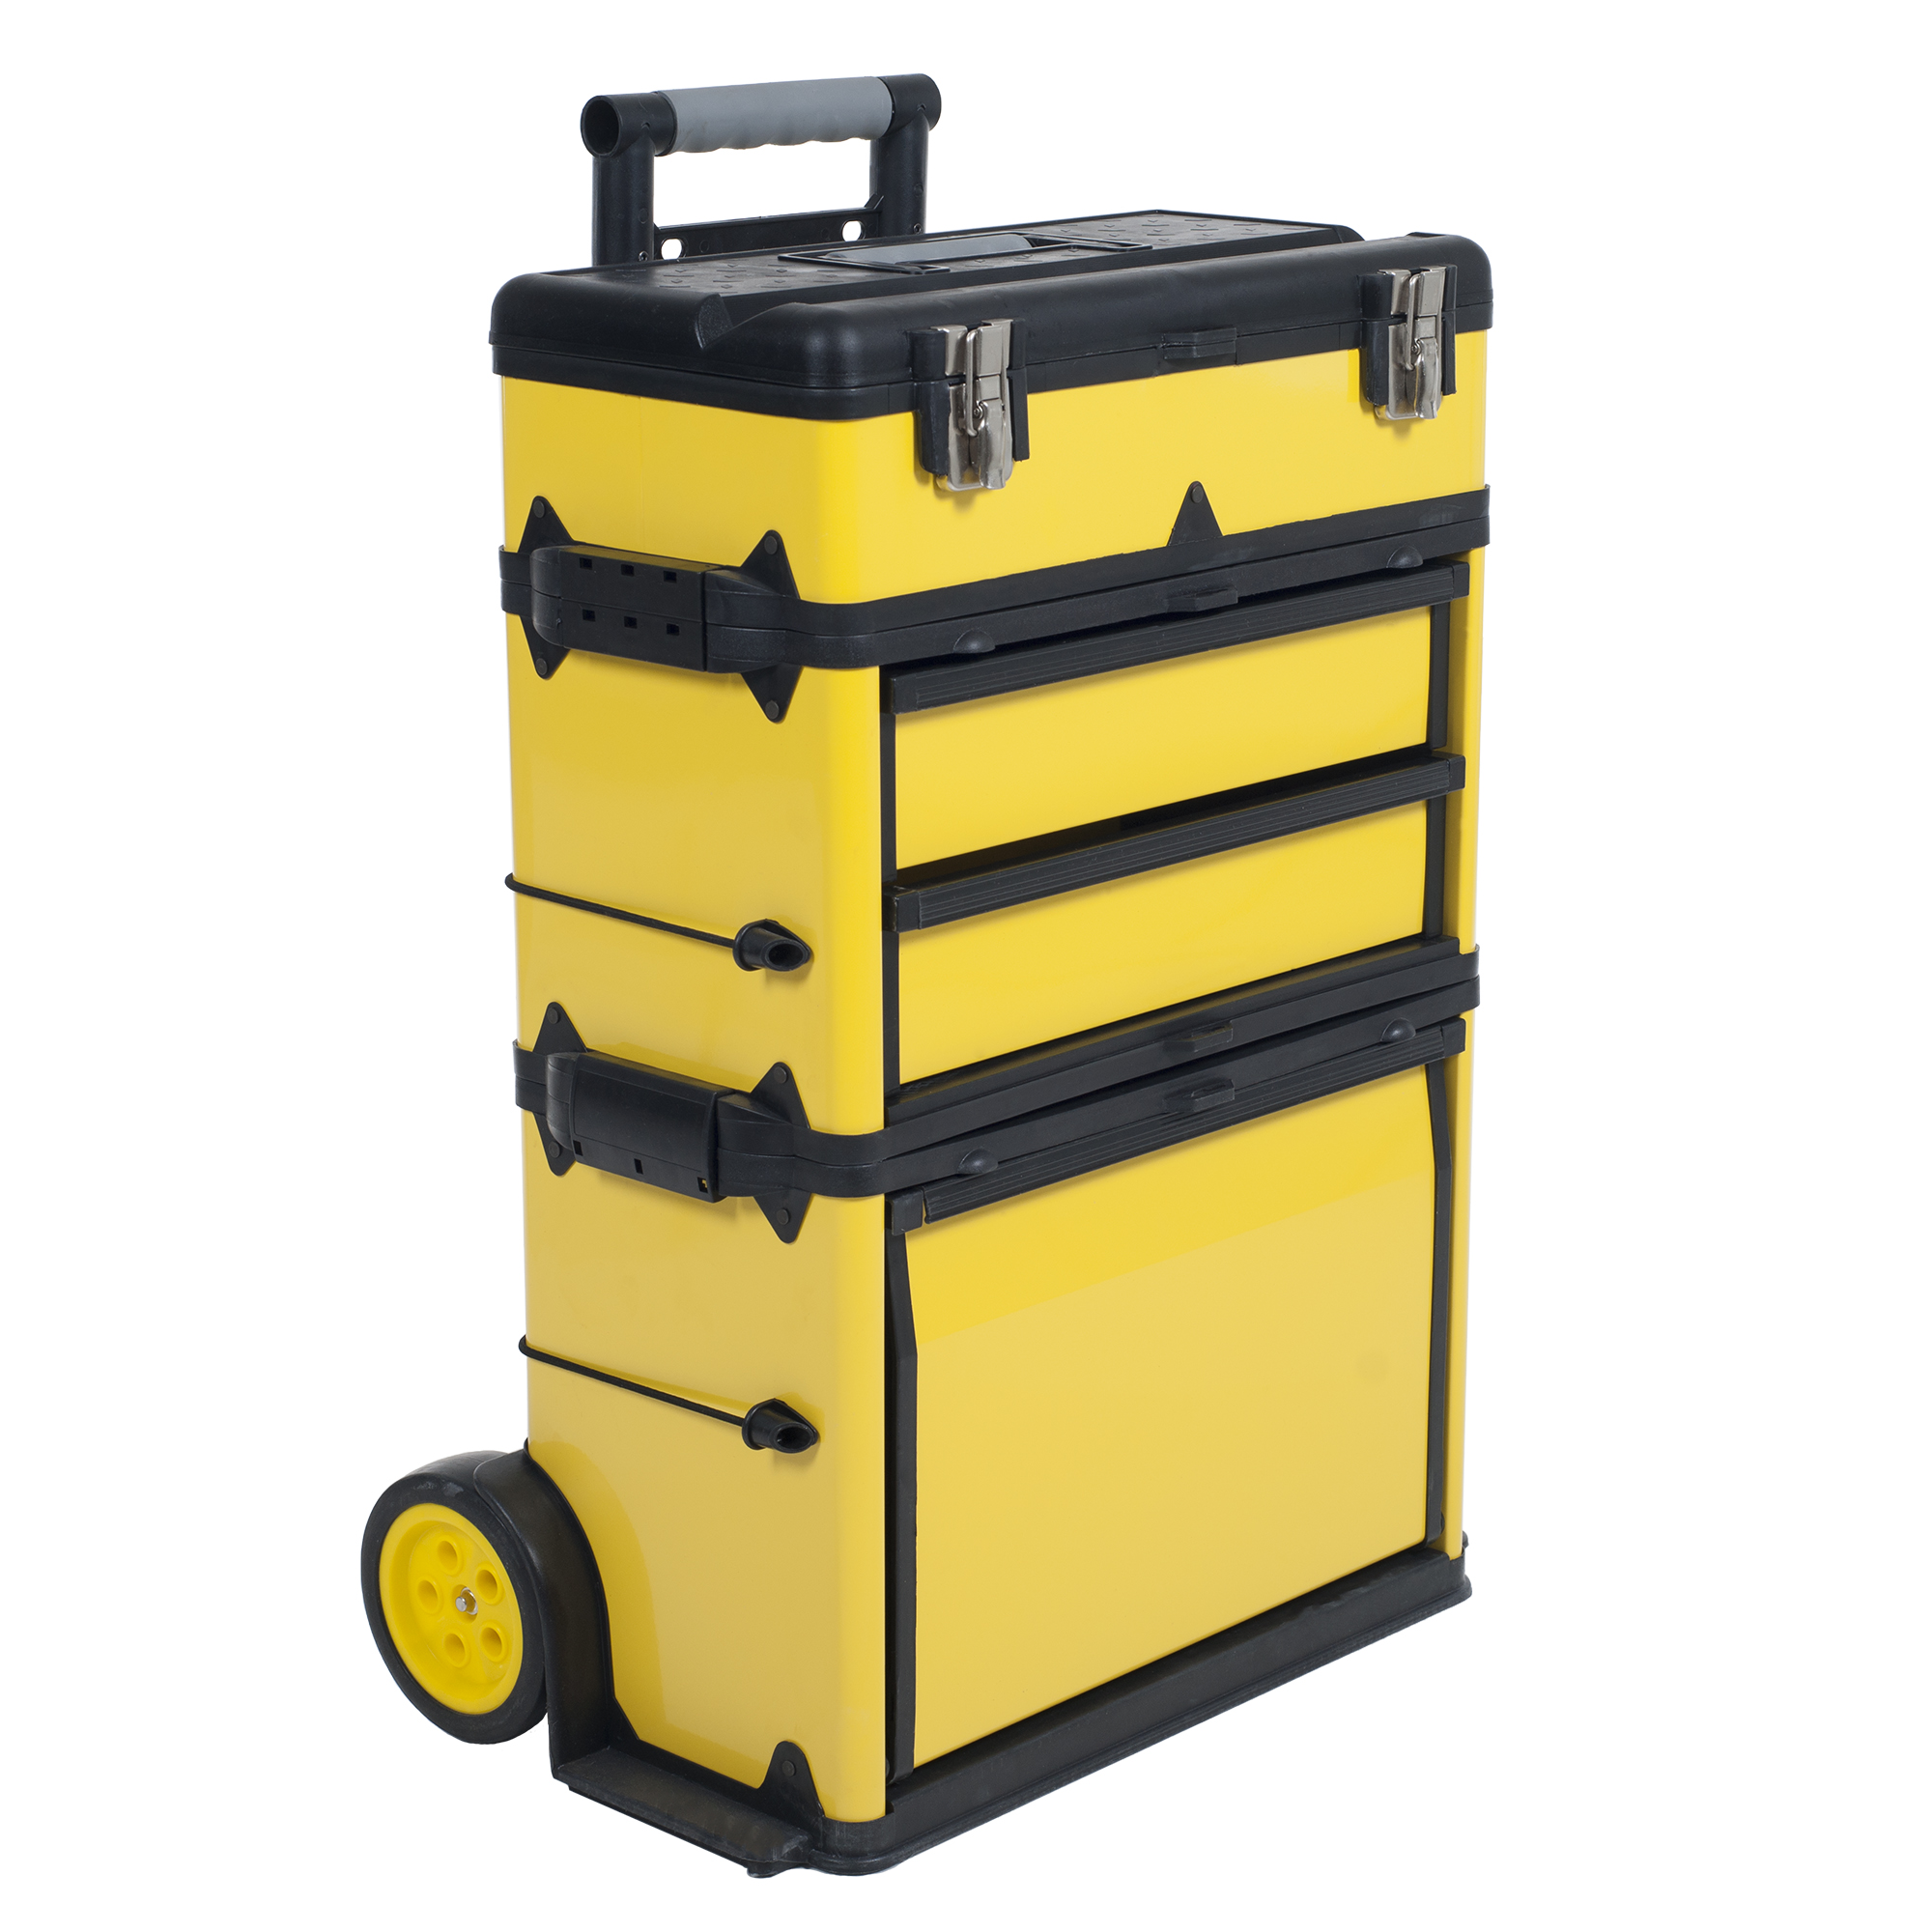 Mobile Stacking Portable Metal Trolley Tool Box Chest by Stalwart